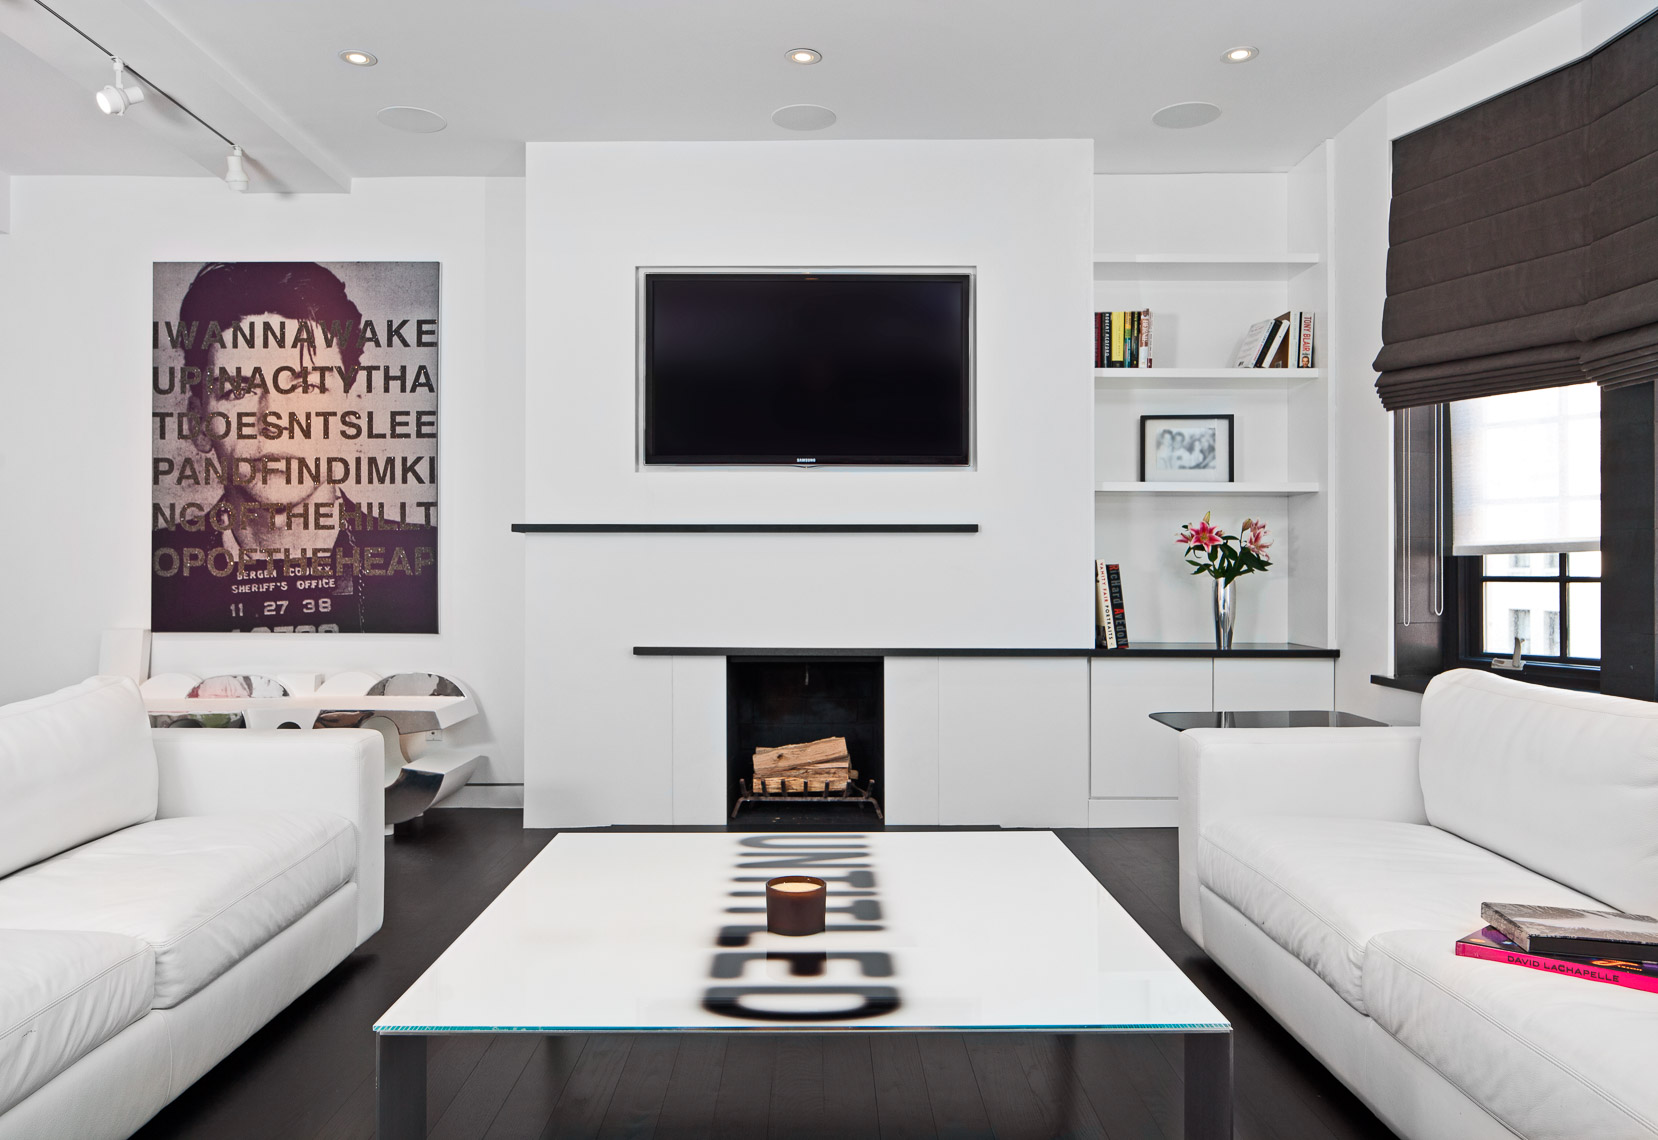 Interiors of a white walled upscale living room with art on the walls